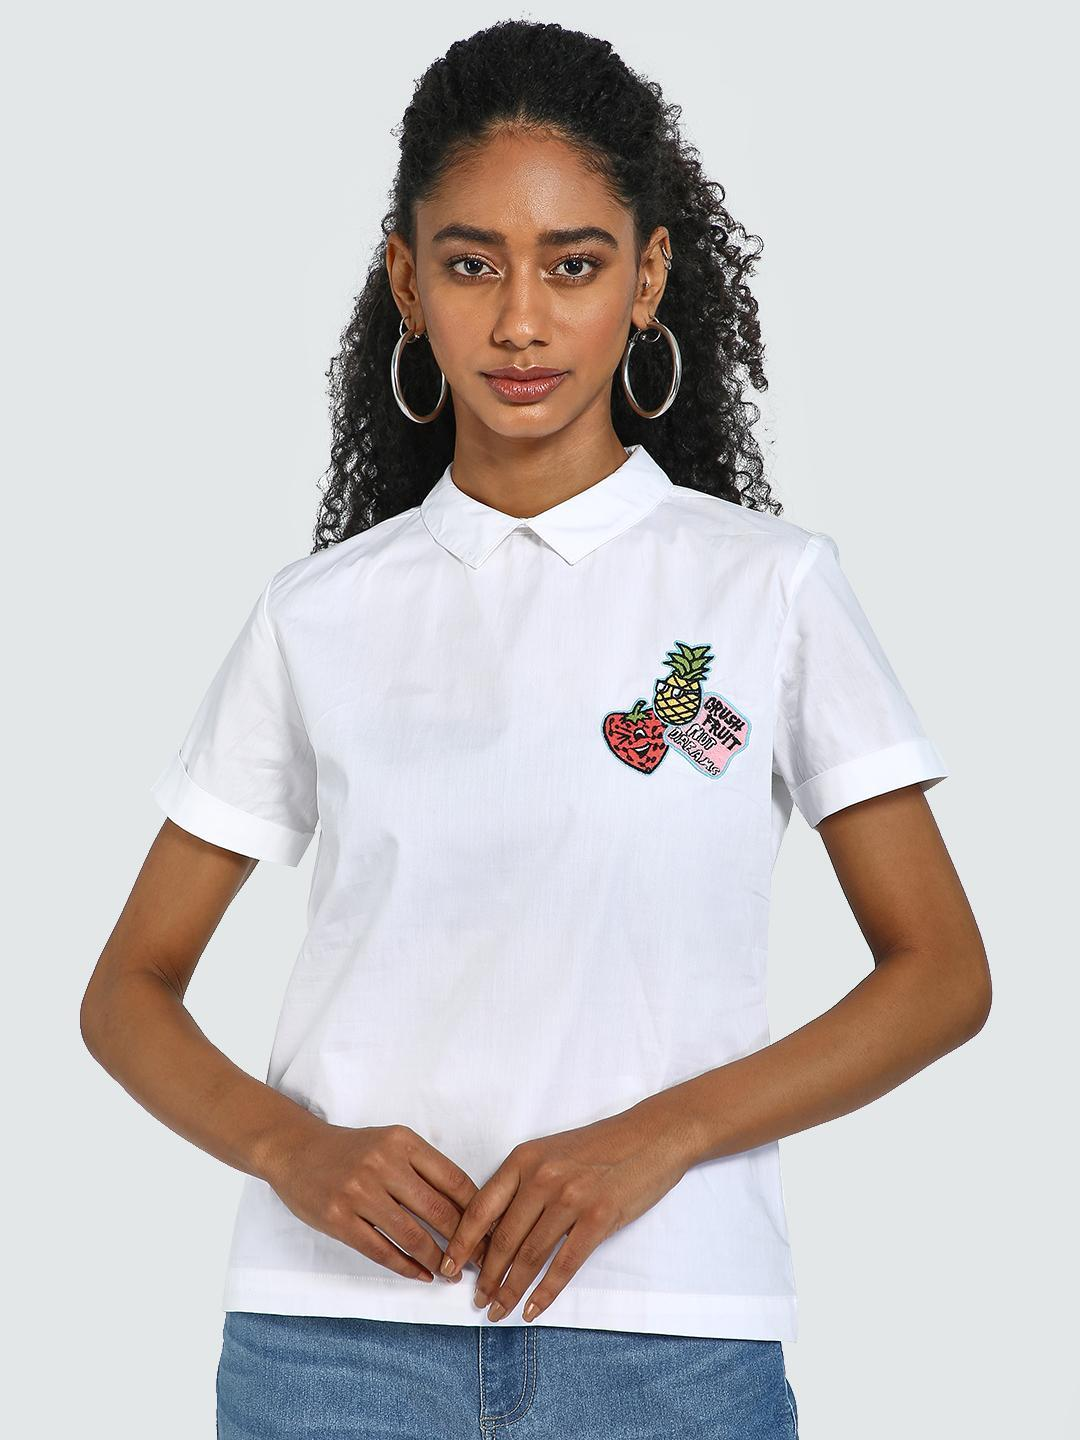 Blue Saint White Fruit & Slogan Embroidered Patch Blouse 1